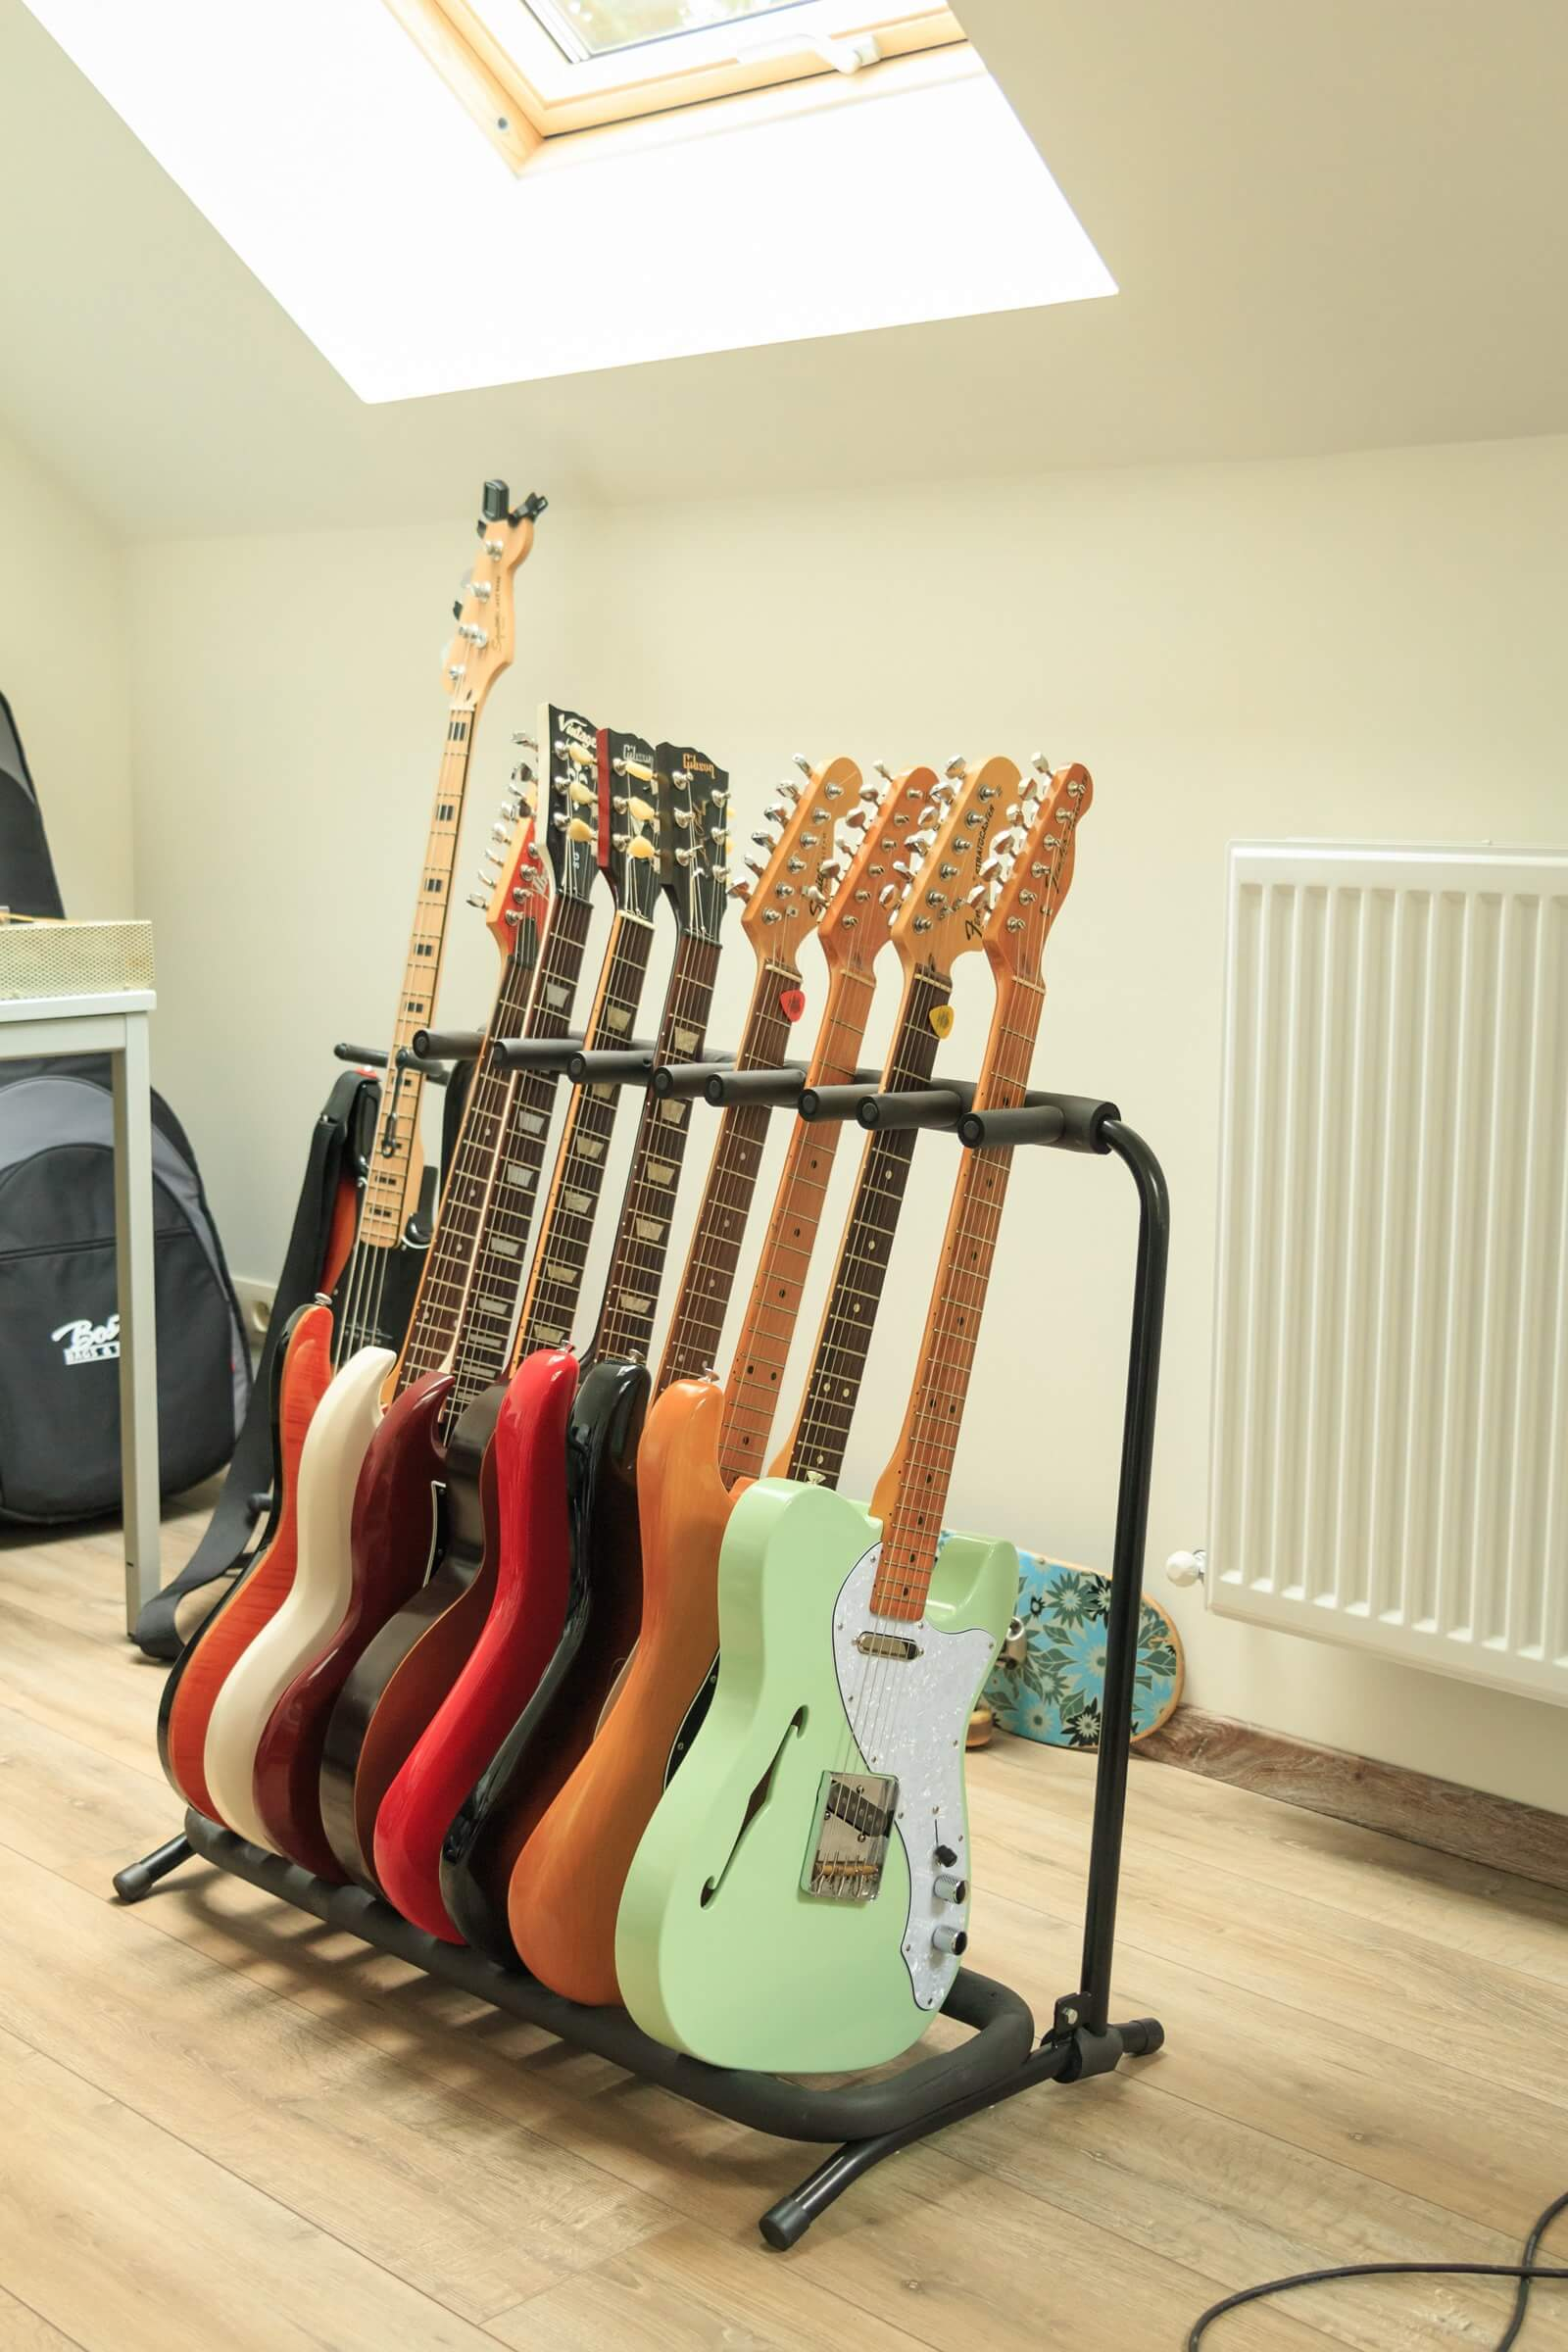 A recently refinished Telecaster Thinline on a guitar rack holding several electric guitars